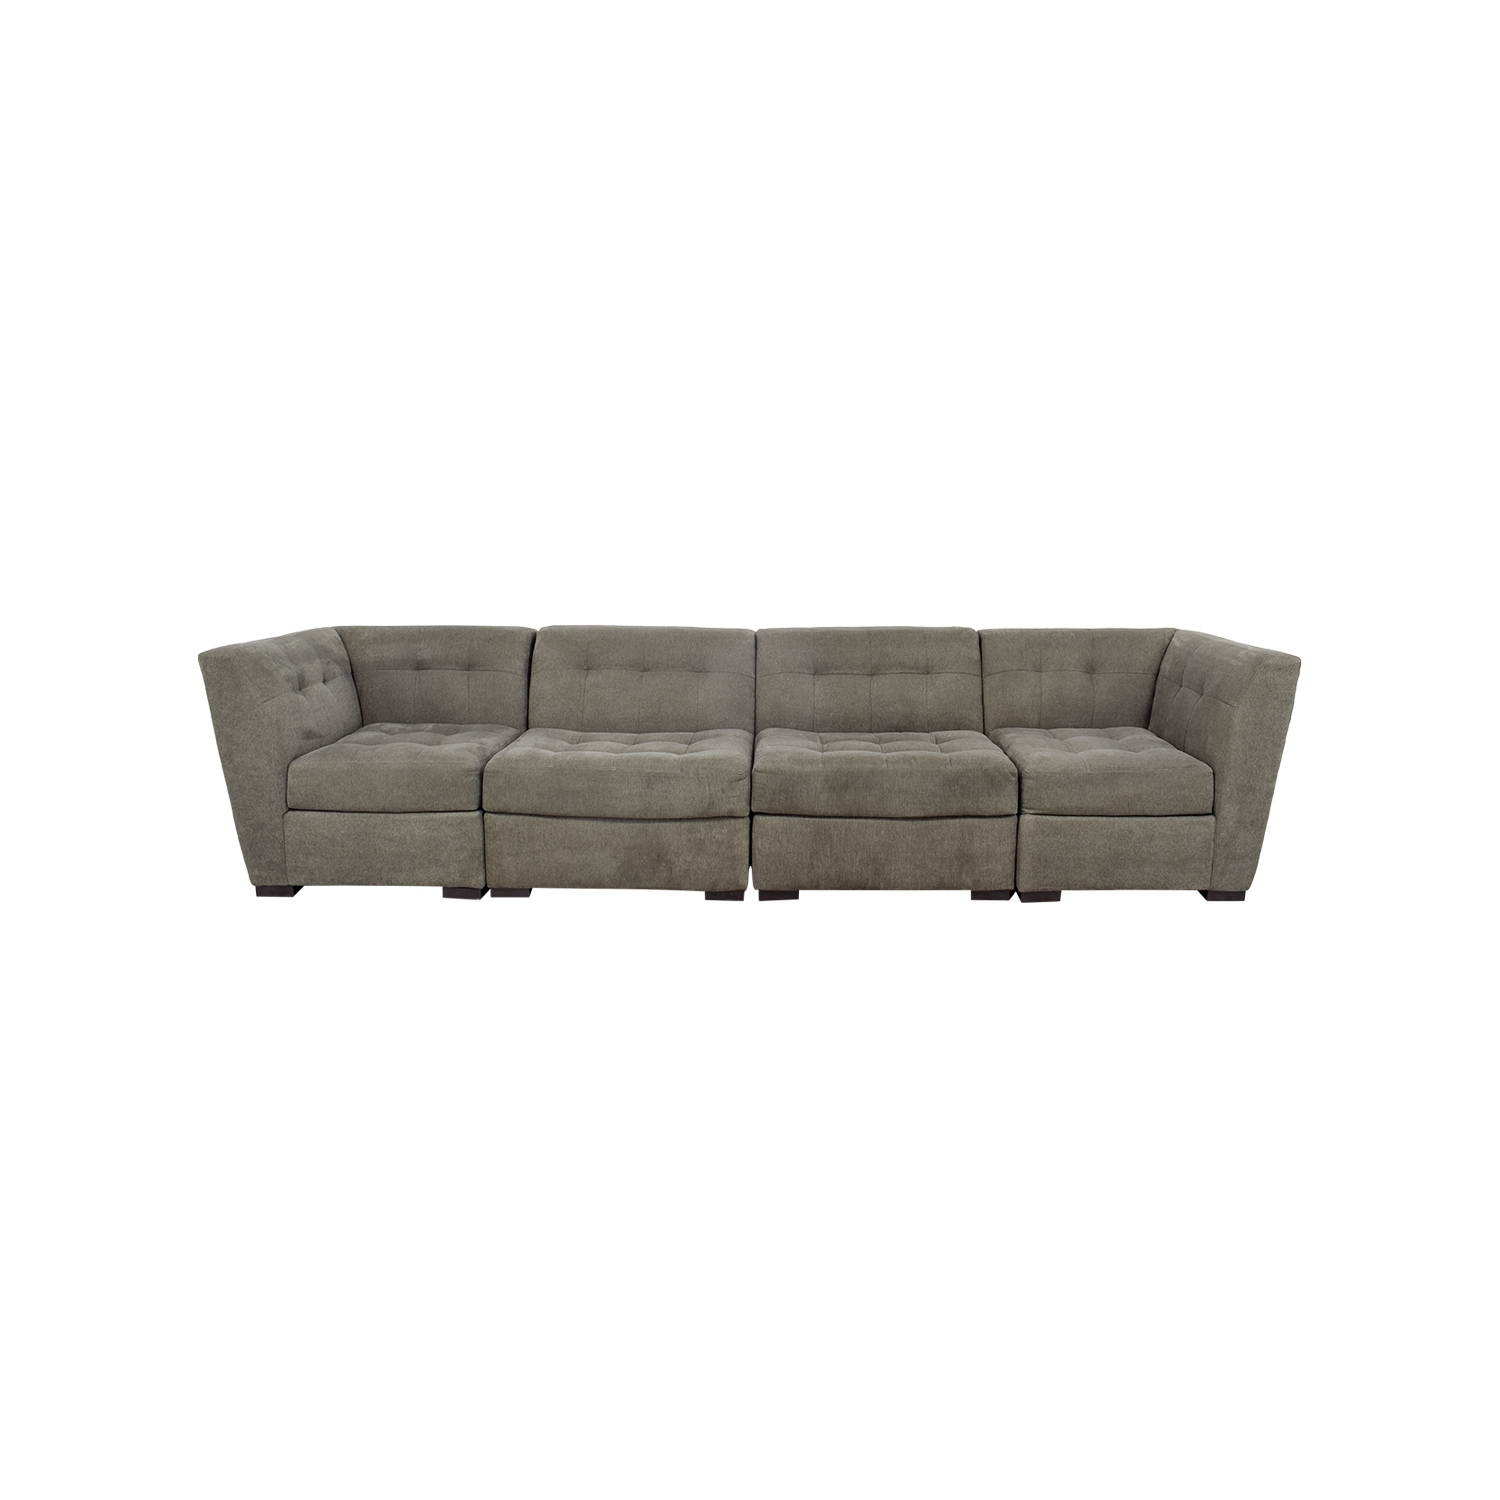 [%63% Off – Macy's Macy's Roxanne Modular Sectional Sofa / Sofas Throughout Well Known Macys Leather Sectional Sofas|Macys Leather Sectional Sofas Inside Well Liked 63% Off – Macy's Macy's Roxanne Modular Sectional Sofa / Sofas|Most Up To Date Macys Leather Sectional Sofas Inside 63% Off – Macy's Macy's Roxanne Modular Sectional Sofa / Sofas|Most Current 63% Off – Macy's Macy's Roxanne Modular Sectional Sofa / Sofas Pertaining To Macys Leather Sectional Sofas%] (View 1 of 20)